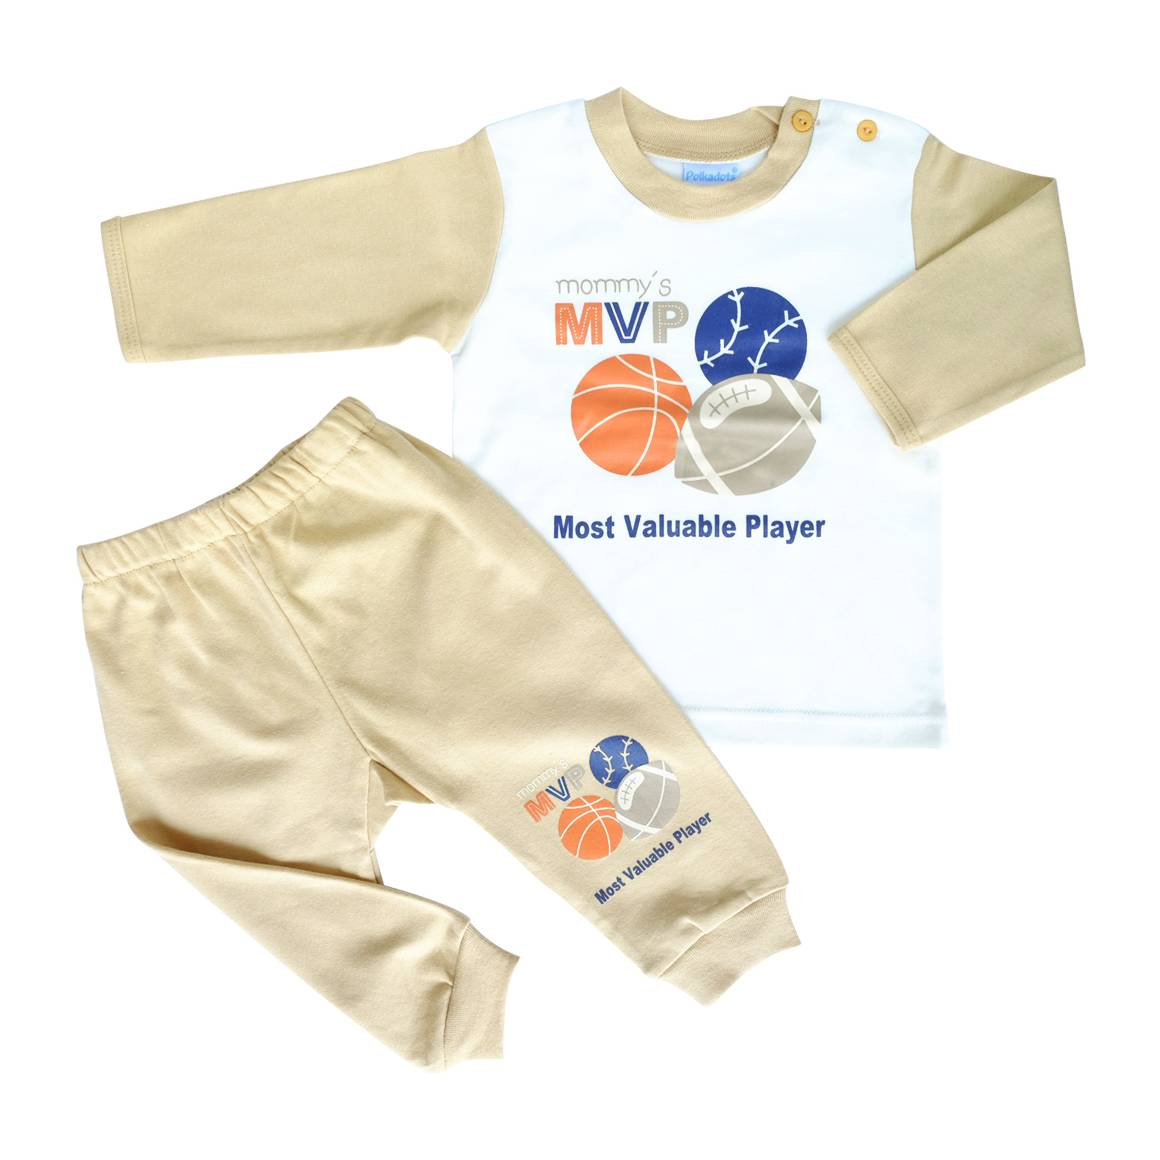 Baju Bayi Setelan Motif Mommy's Most Valuable Player